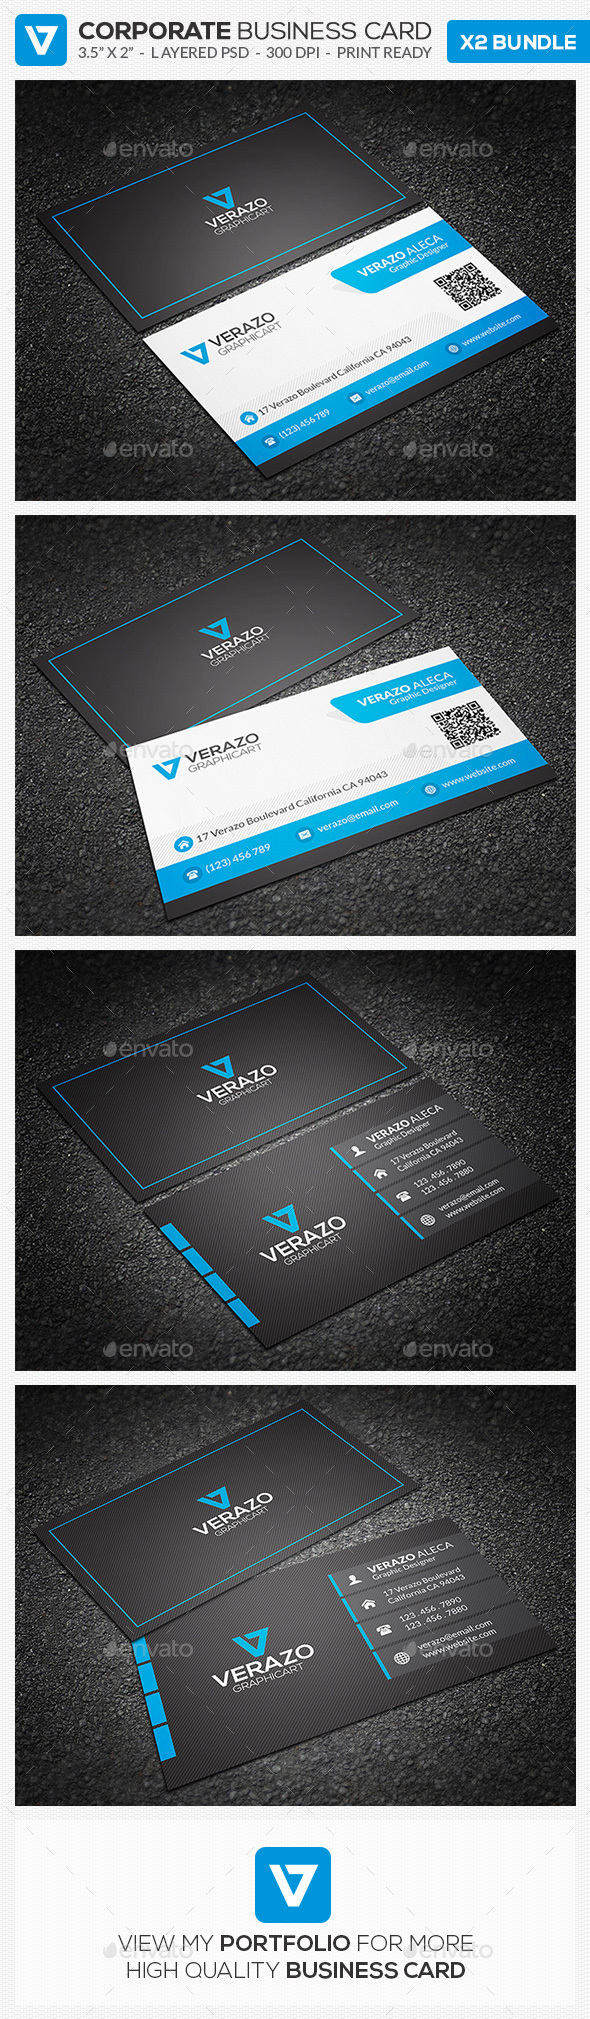 Business Card Bundle 25 - Corporate Business Cards